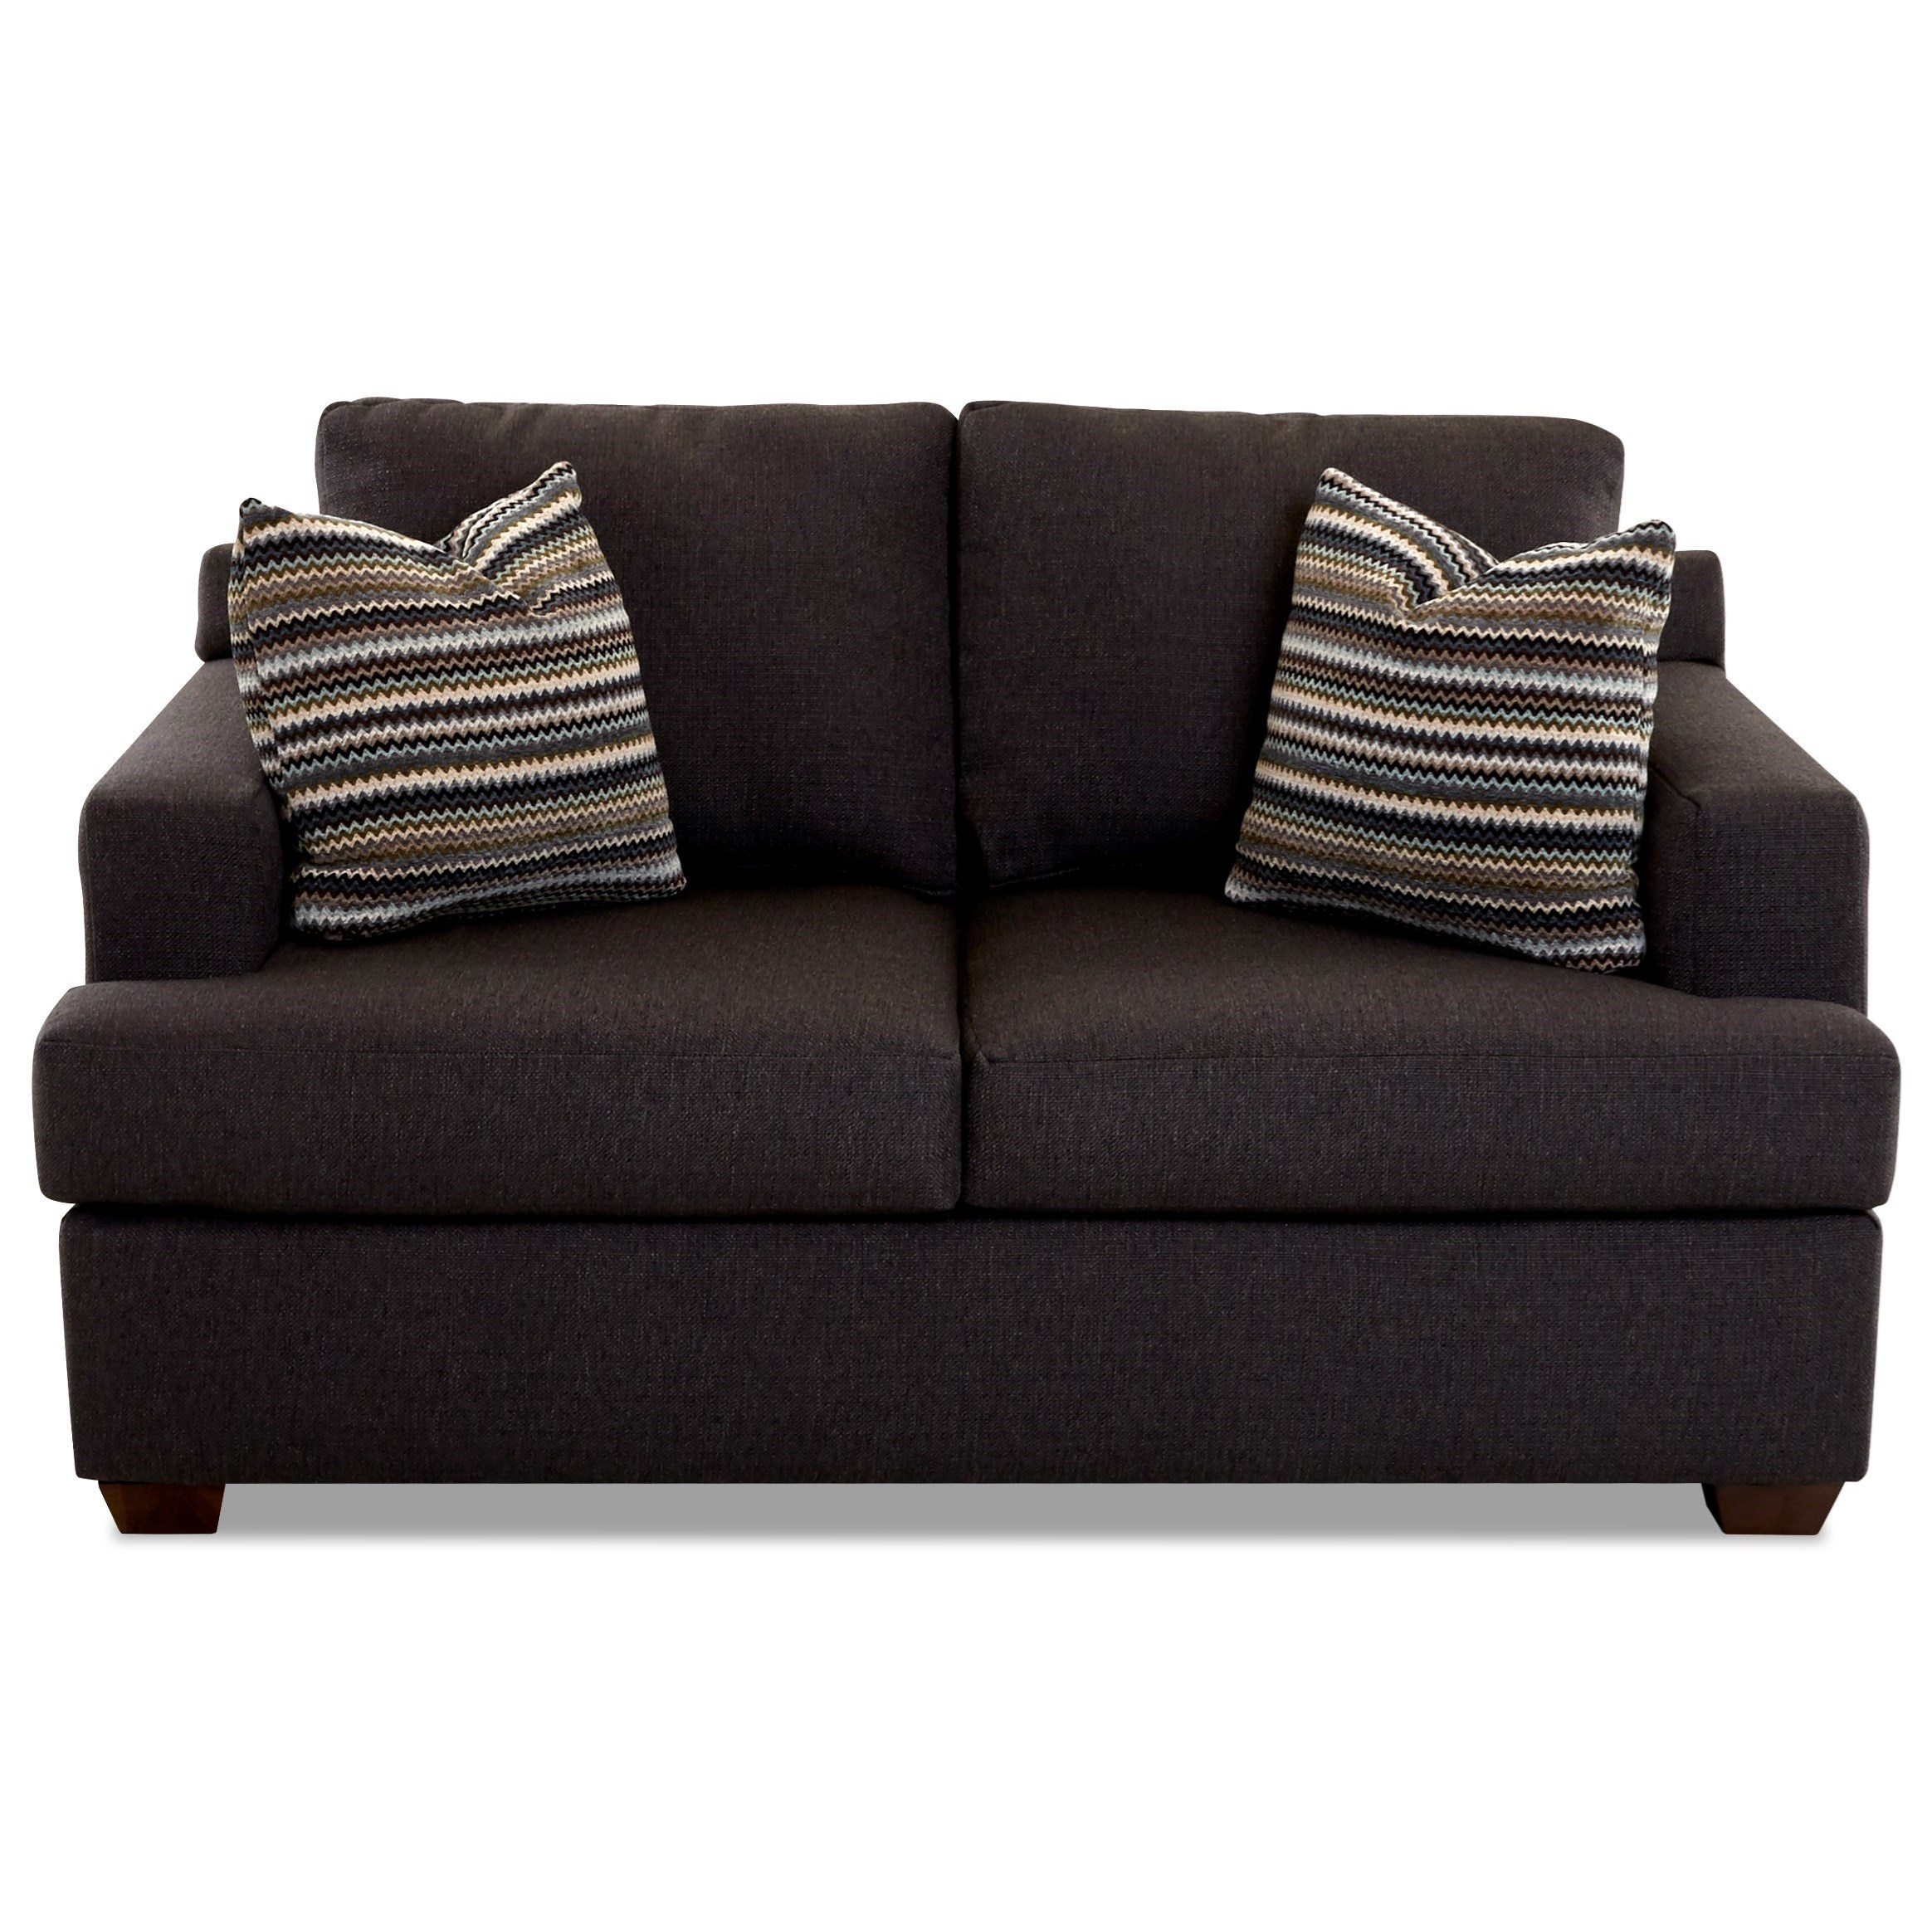 Juniper Loveseat by Klaussner at Northeast Factory Direct